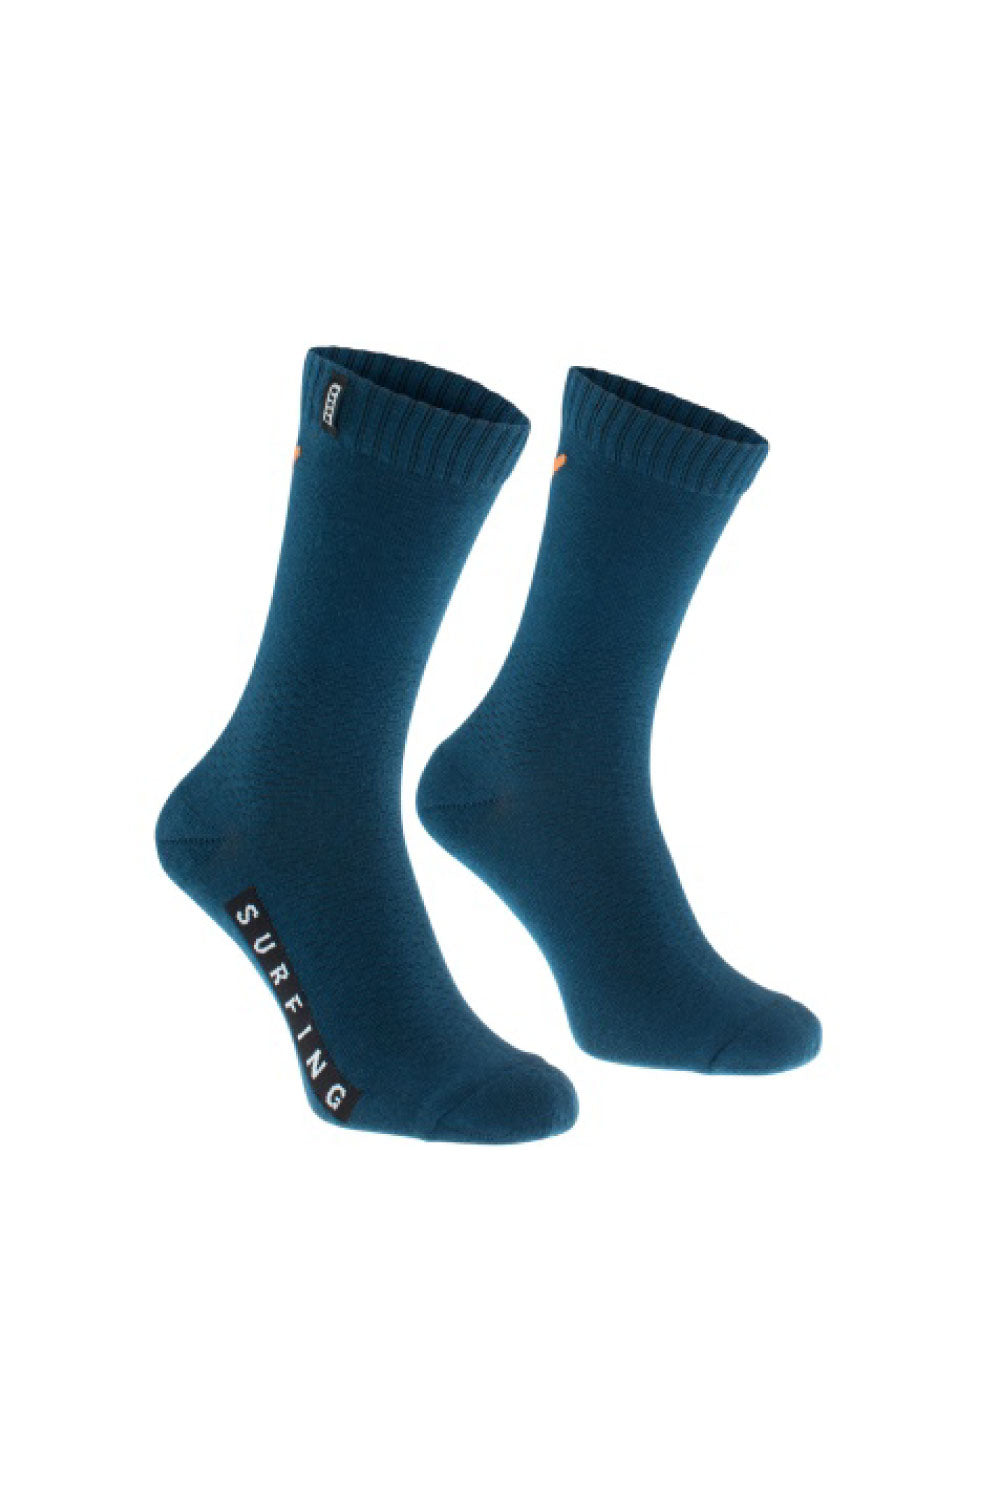 ION 2020 Traze MTB Socks